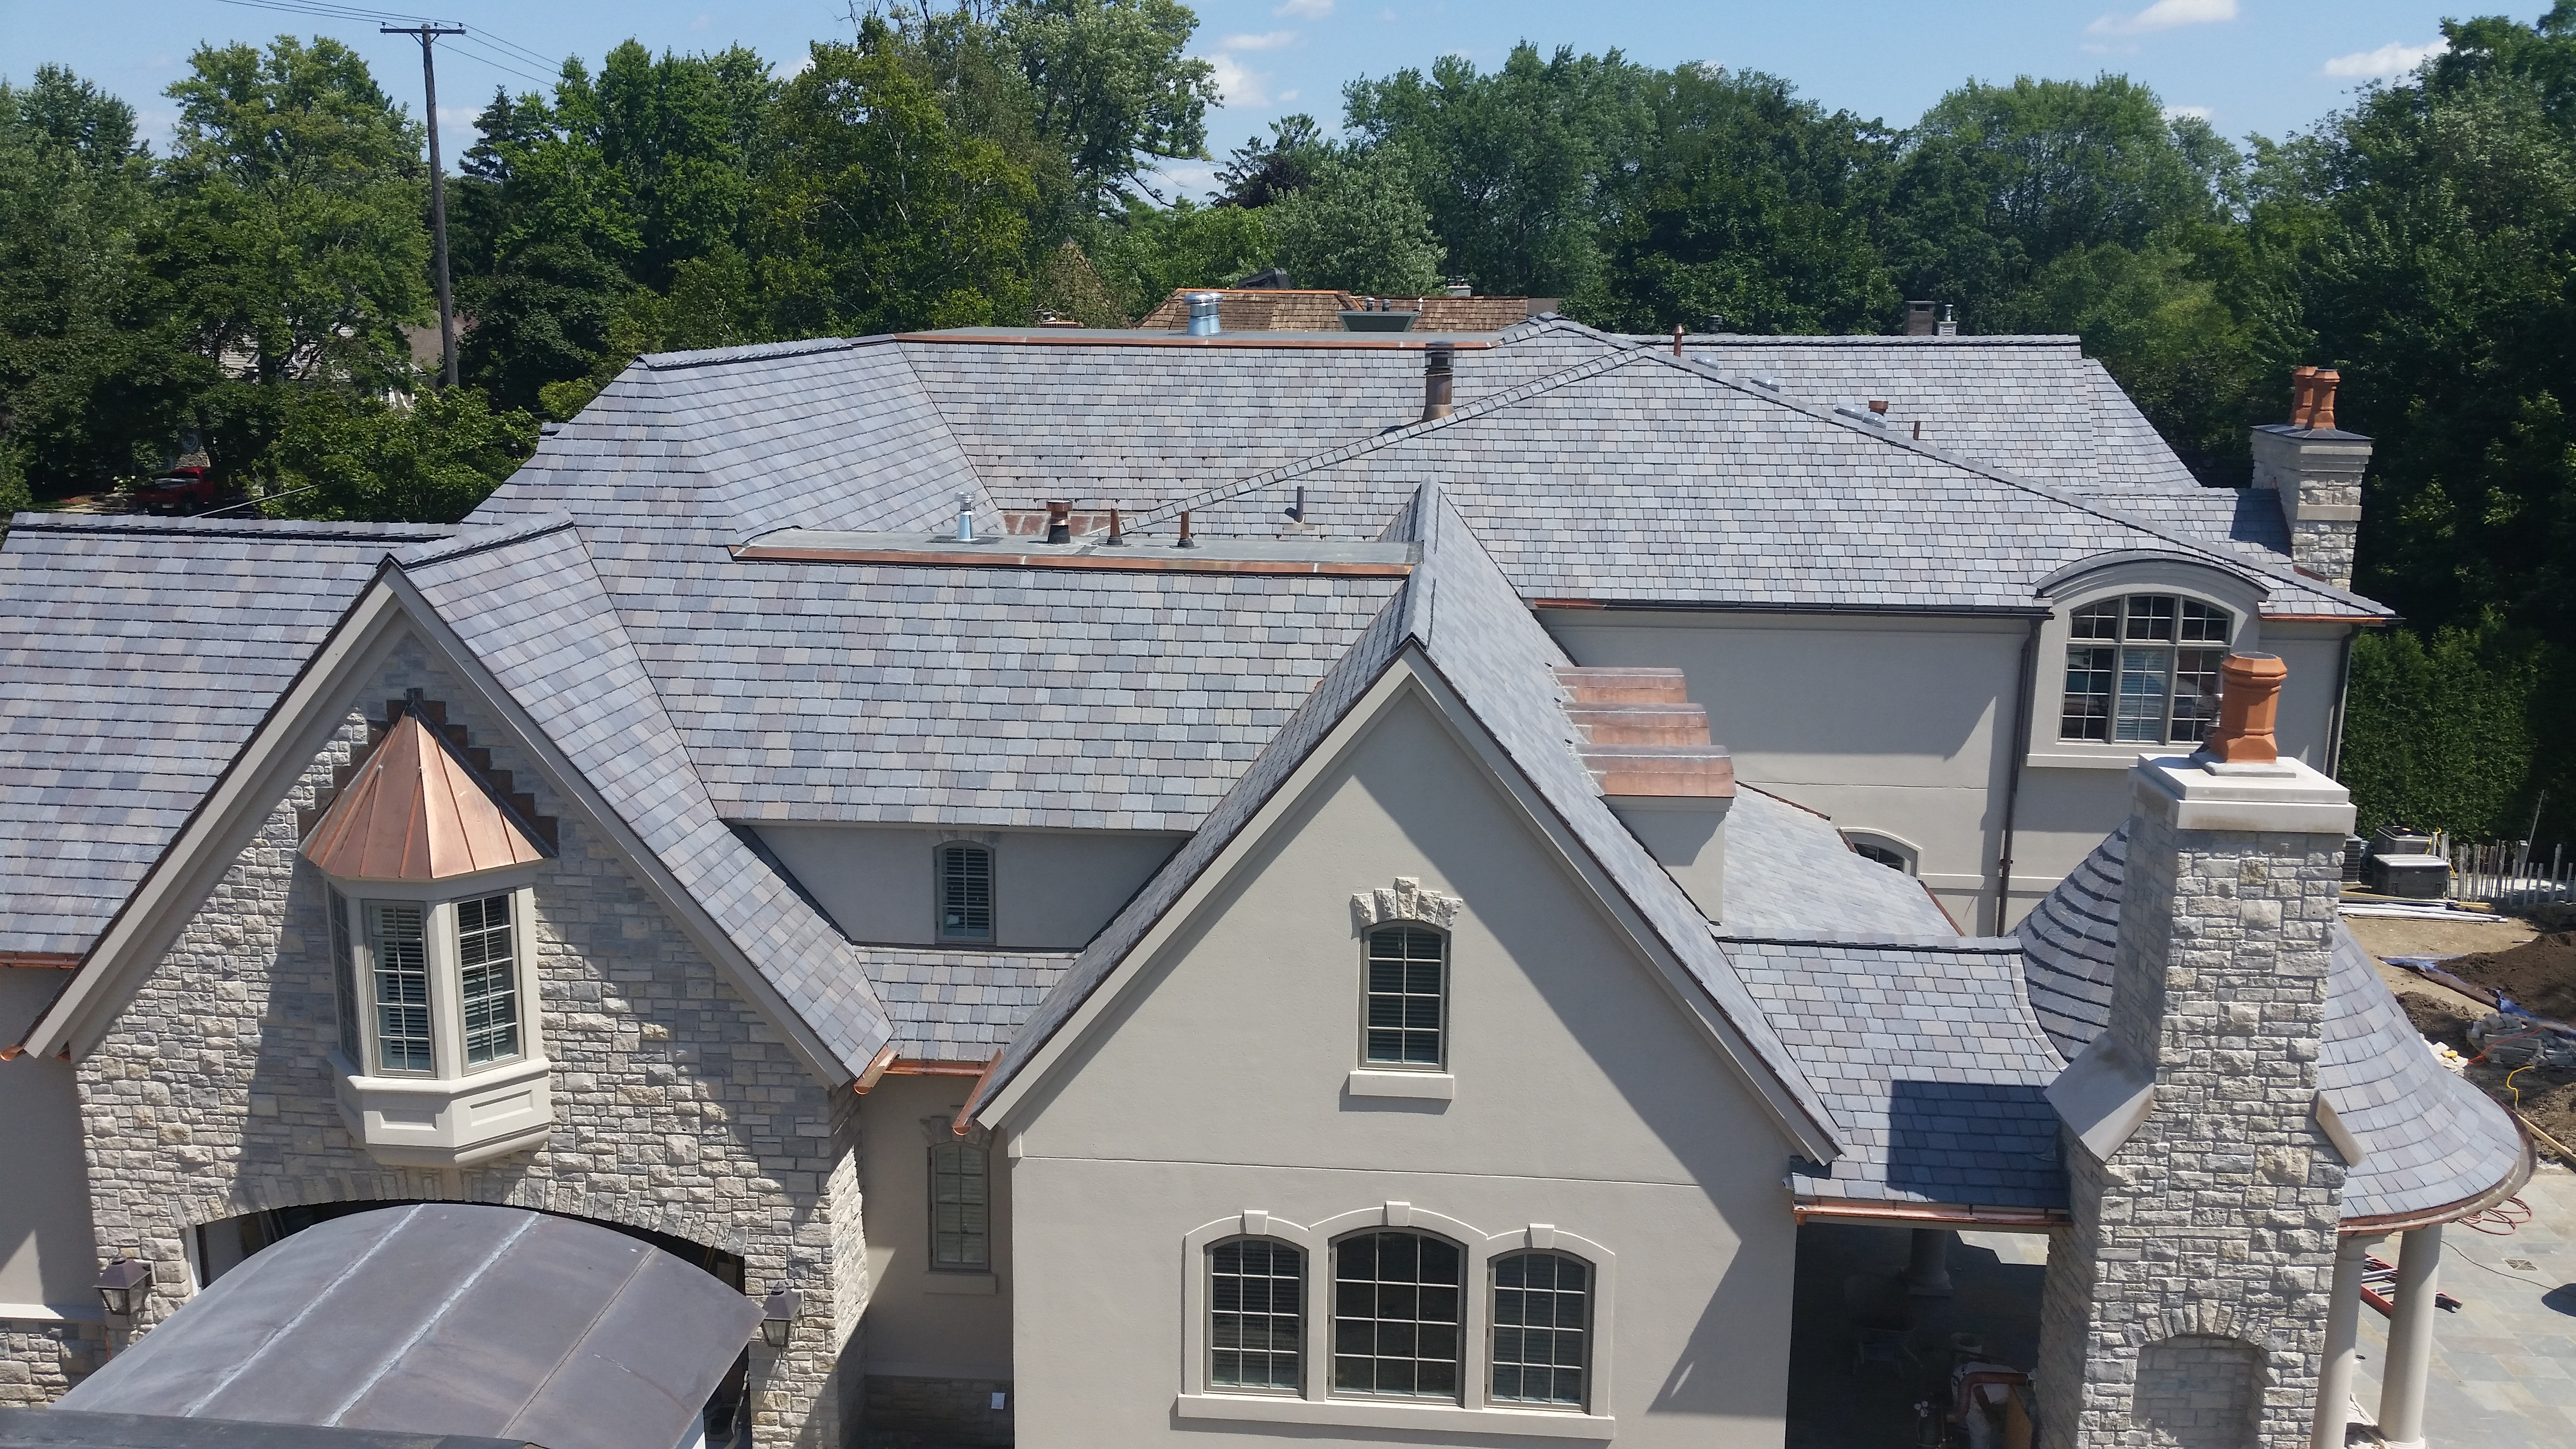 Roofers applaud lifespan looks of davinci roofs for Davinci roofscapes cost